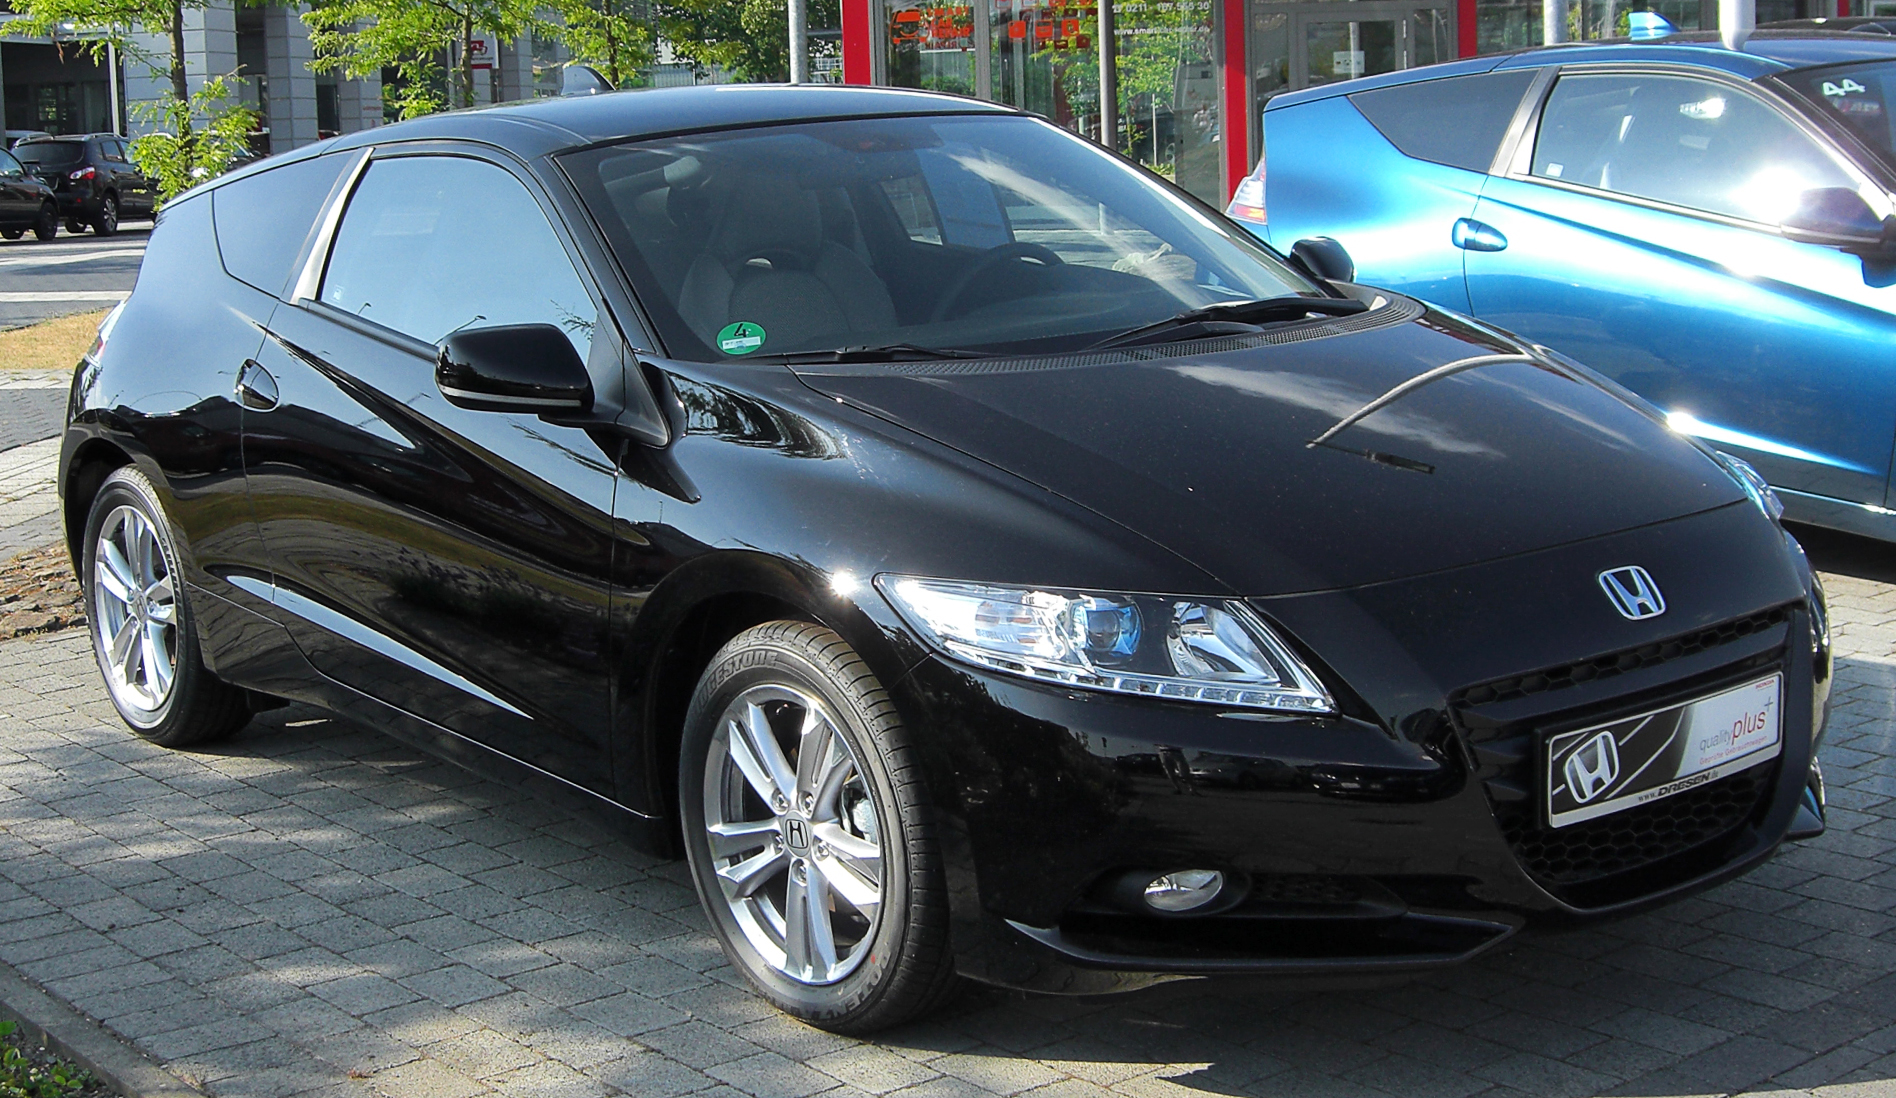 Honda Cr Z Wikipedia 1999 Crv Parts Route 22